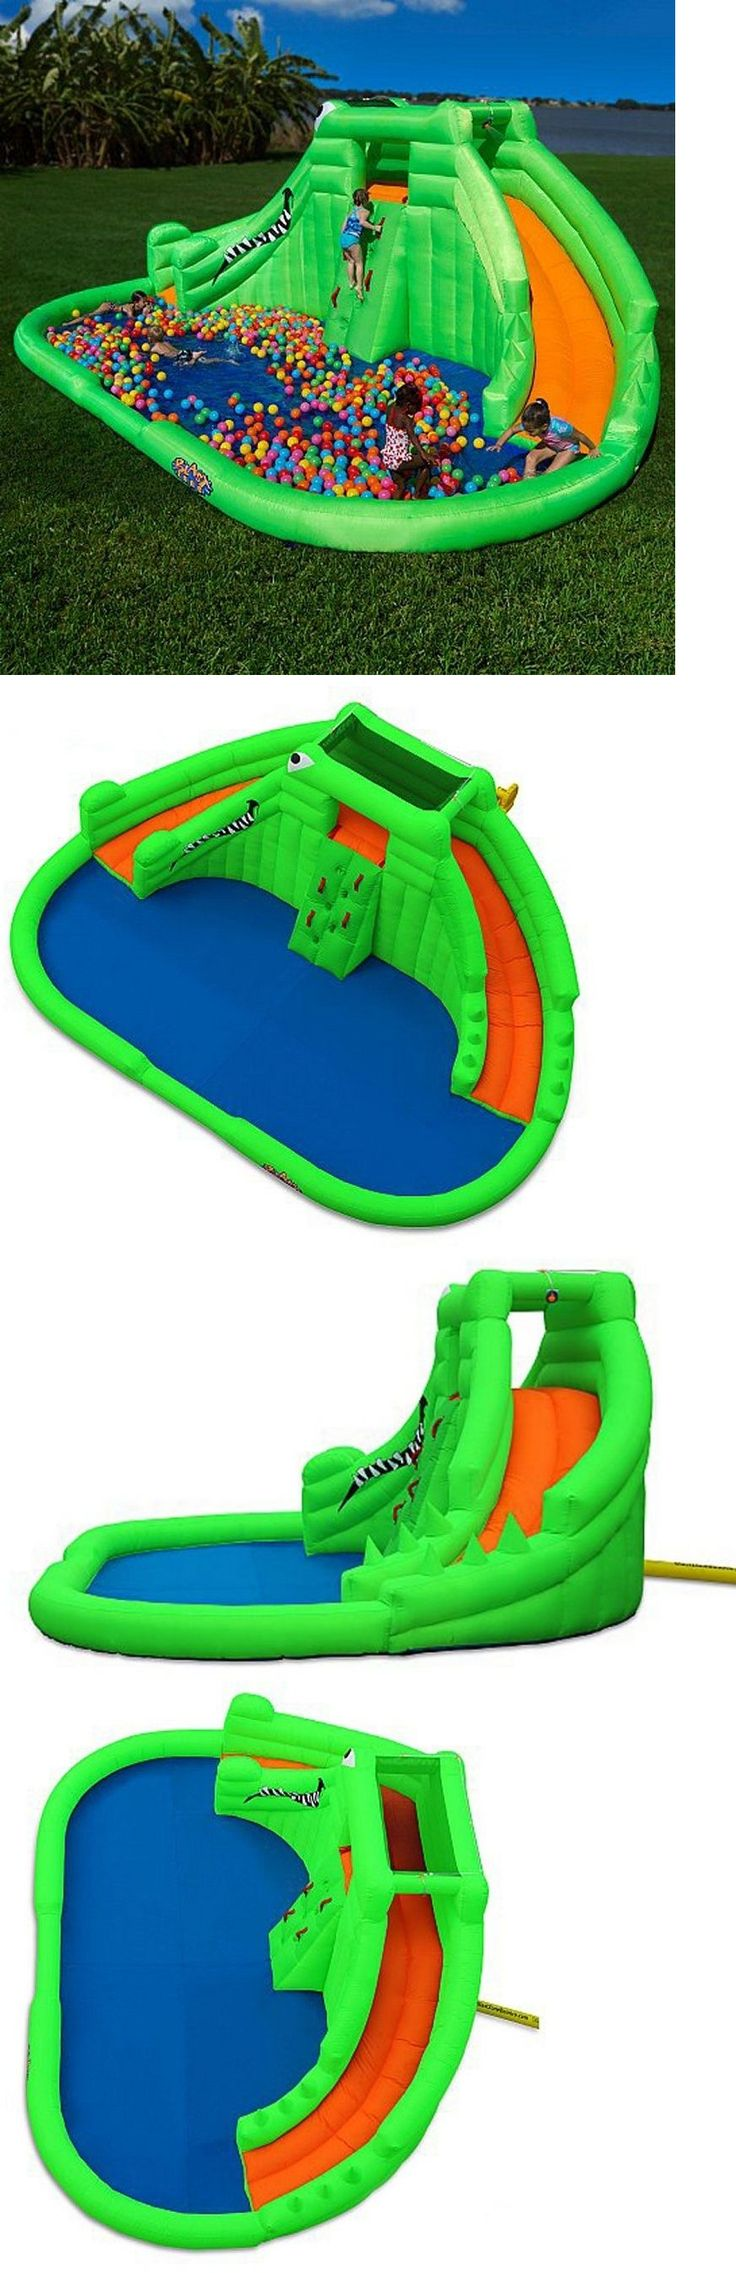 Water Slides 145992: Big Inflatable Water Slides Aqua Park Kids Pool Alberca Inflable Resbaladillas -> BUY IT NOW ONLY: $1459.99 on eBay!